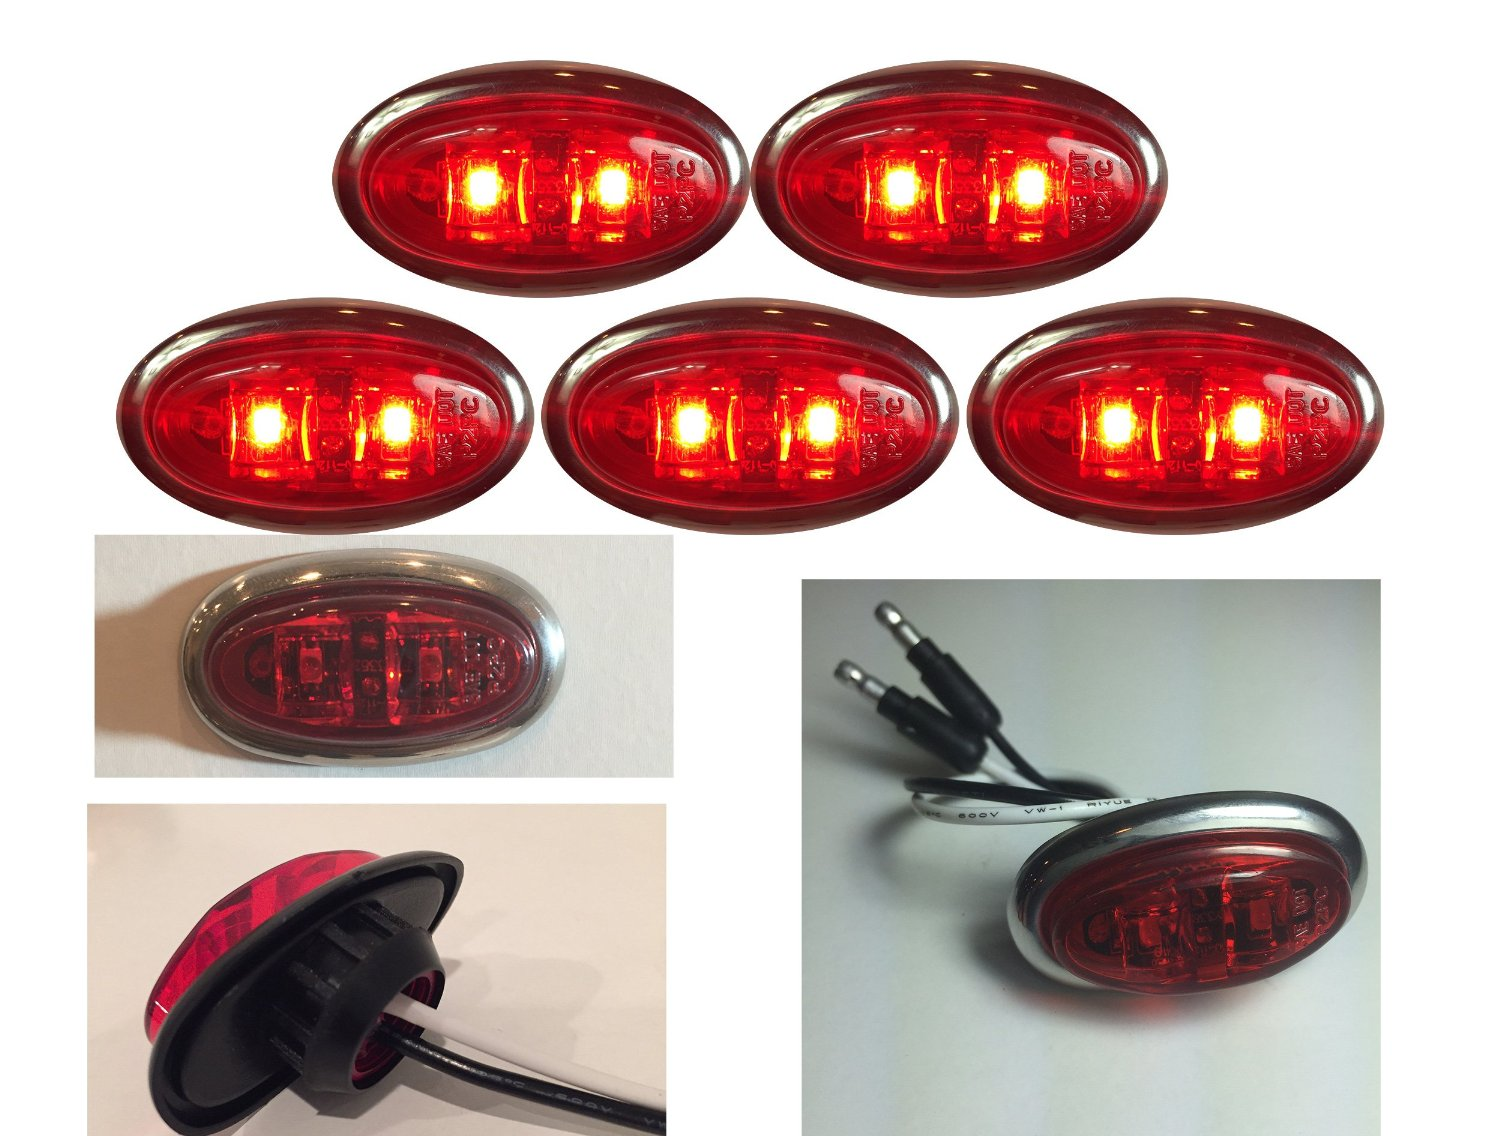 """5 NEW LONG HAUL RED RED MINI W STAINLESS STEEL TRIM OVAL 2 DIODE 2"""" X 3/4"""" .75"""" CLEARANCE MARKER TRAILER TRUCK LIGHTS 12V"""